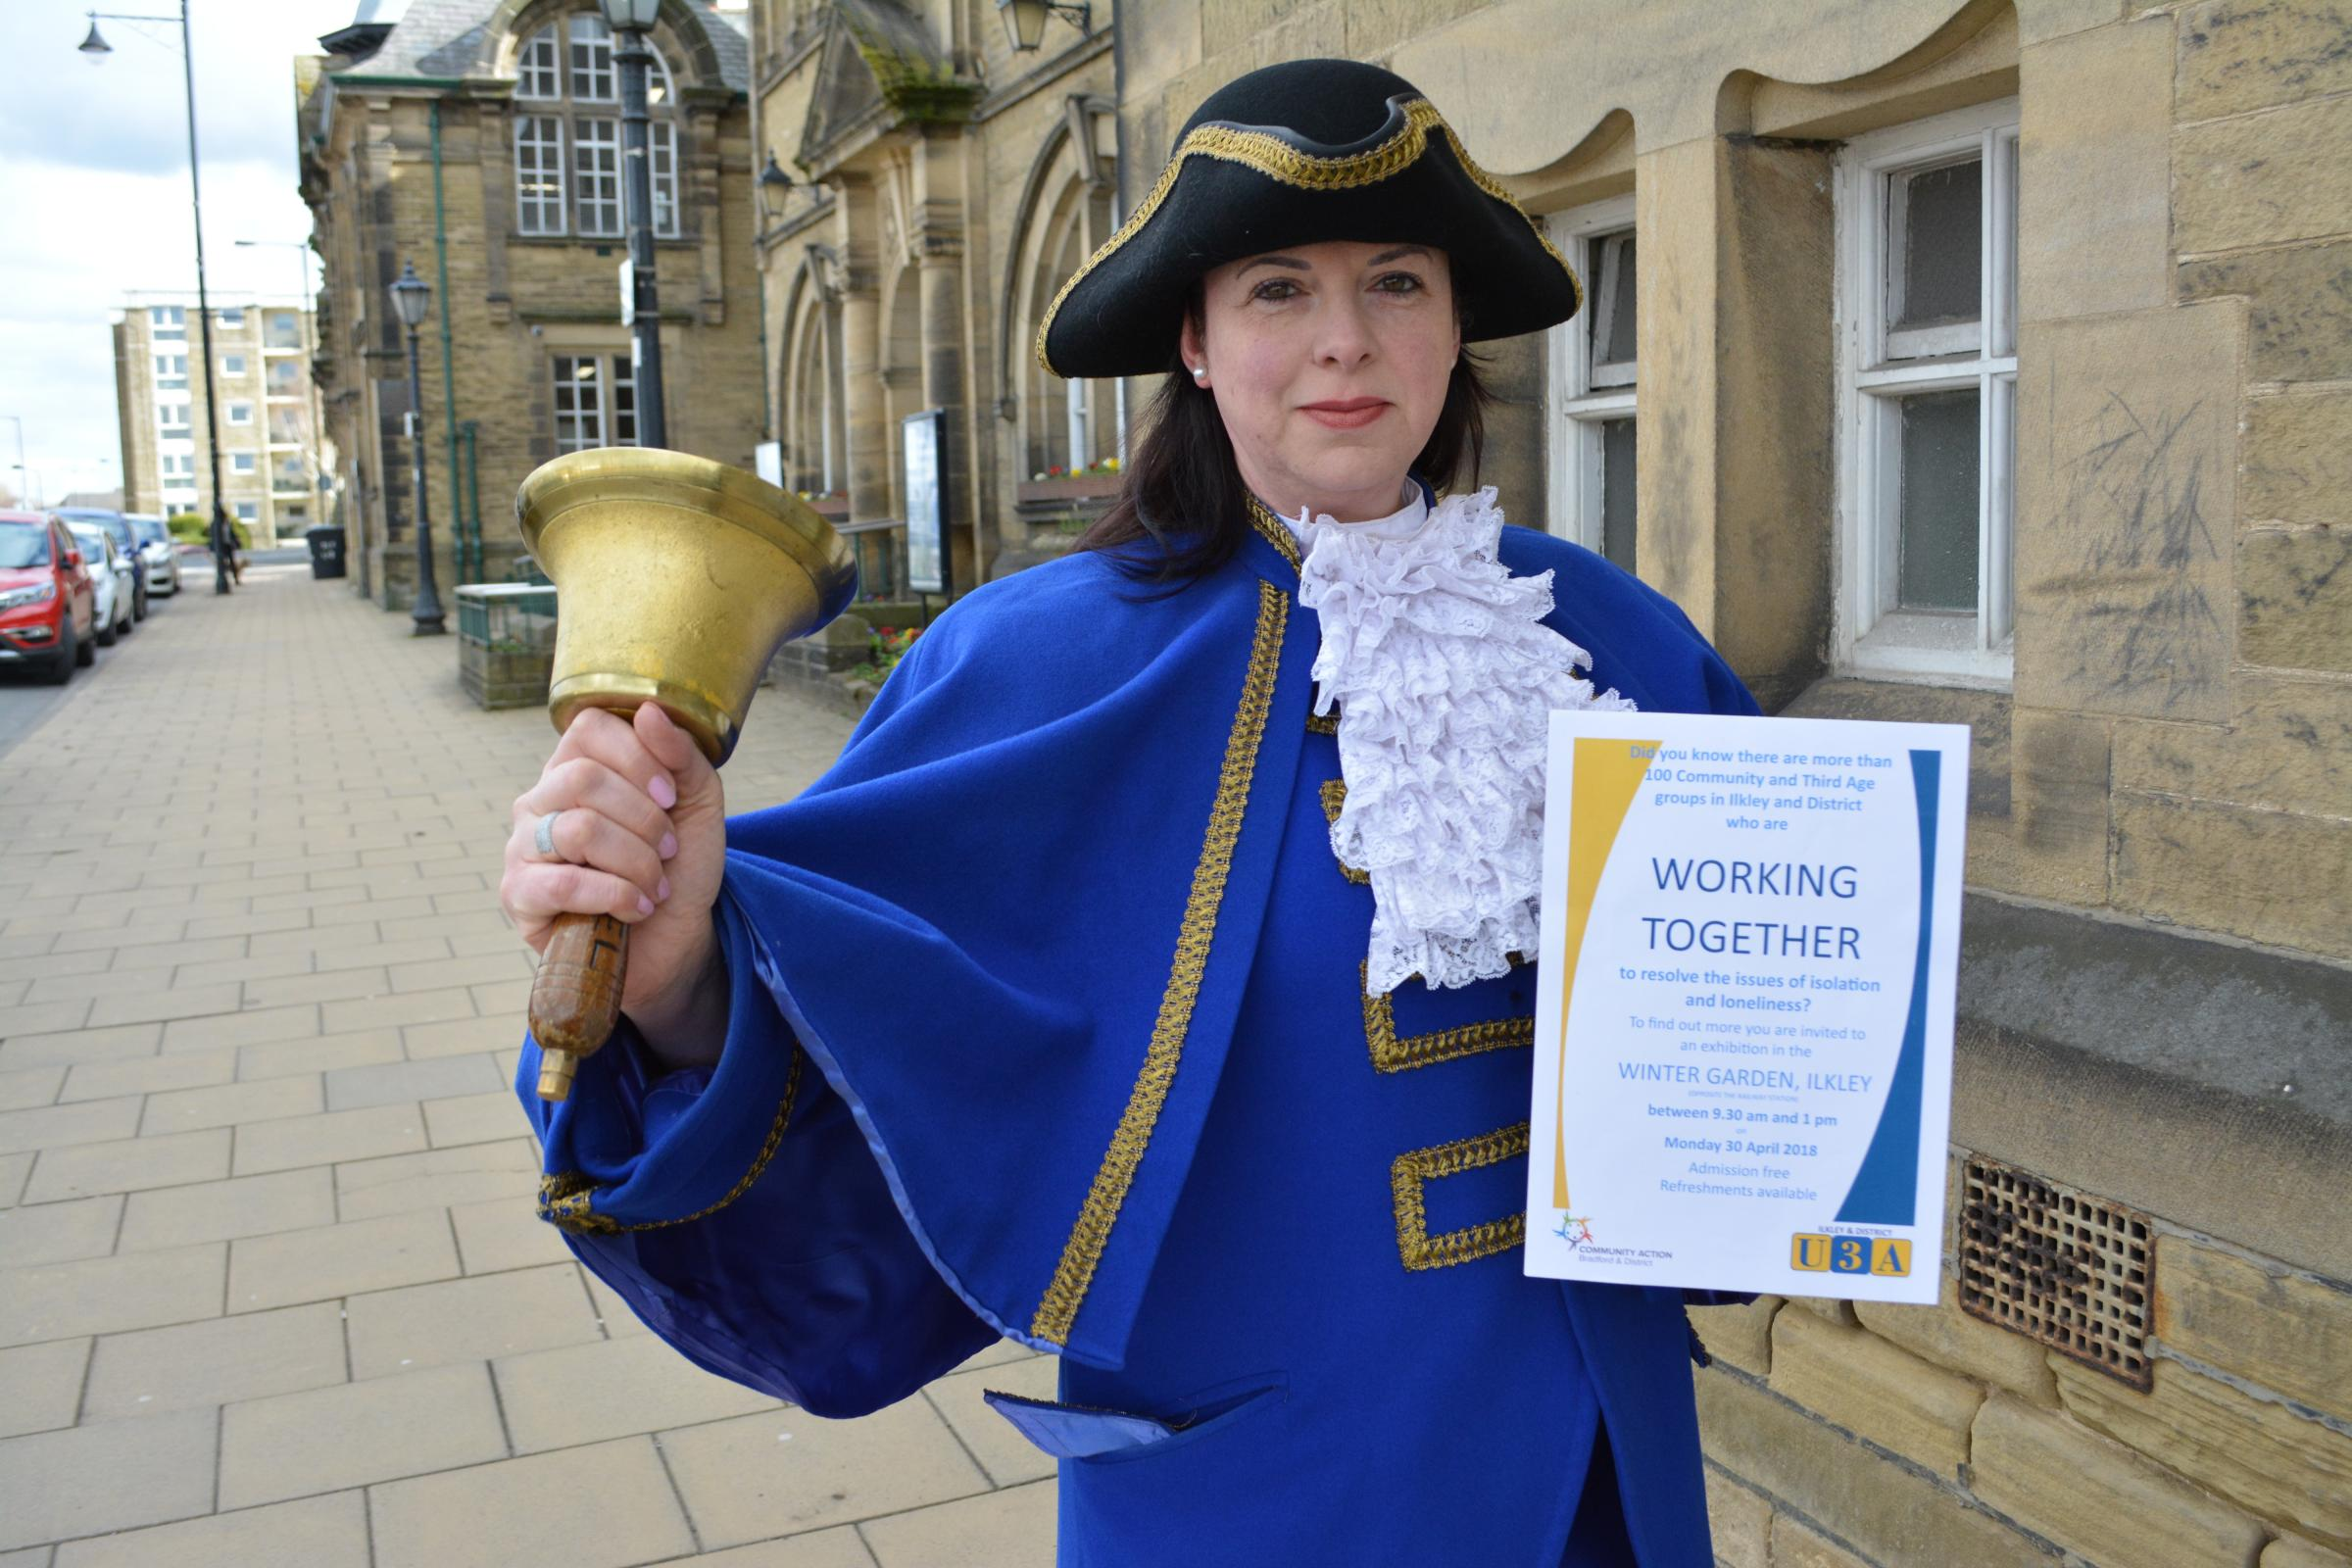 Ilkley Town Crier Isabel Ashman who is helping to spread the word about a major event to tackle social isolation and loneliness being staged in Ilkley on Monday, April 30